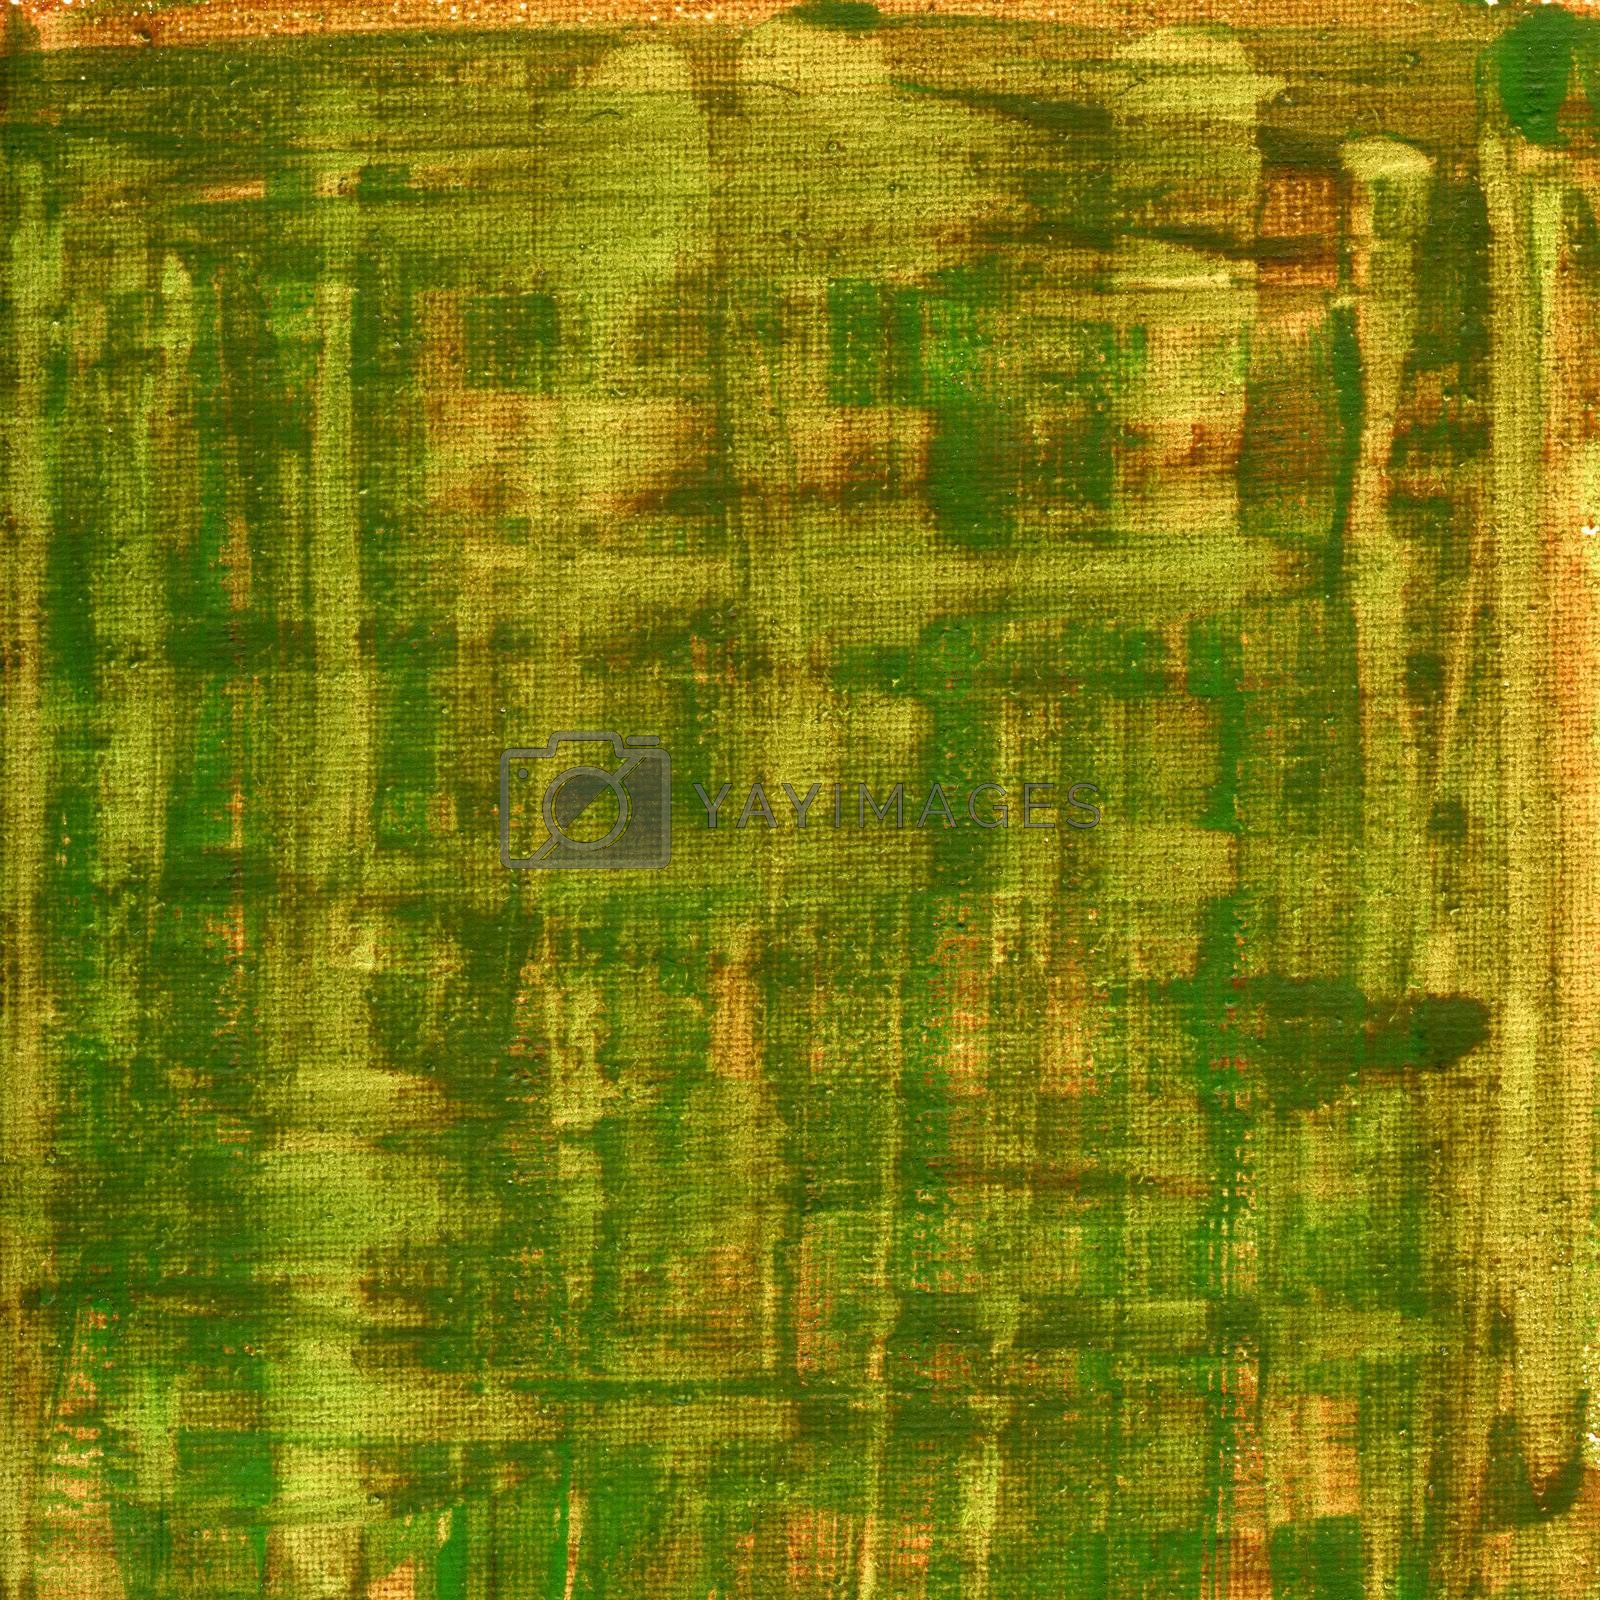 green, brown, yellow watercolor abstract with canvas texture by PixelsAway